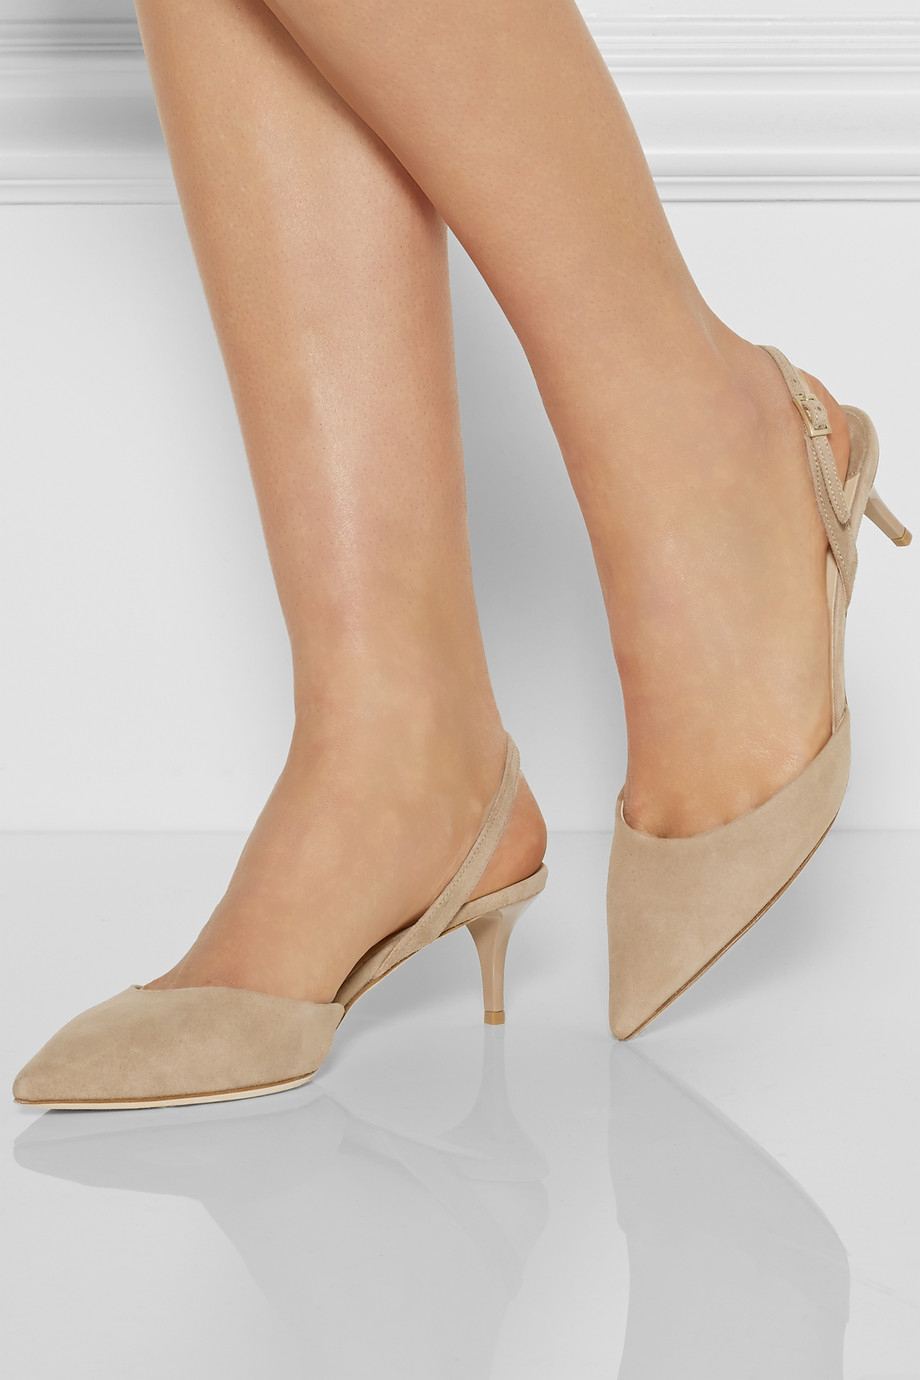 96cccafd28b38 Jimmy Choo Natural Tide Suede Slingback Pumps